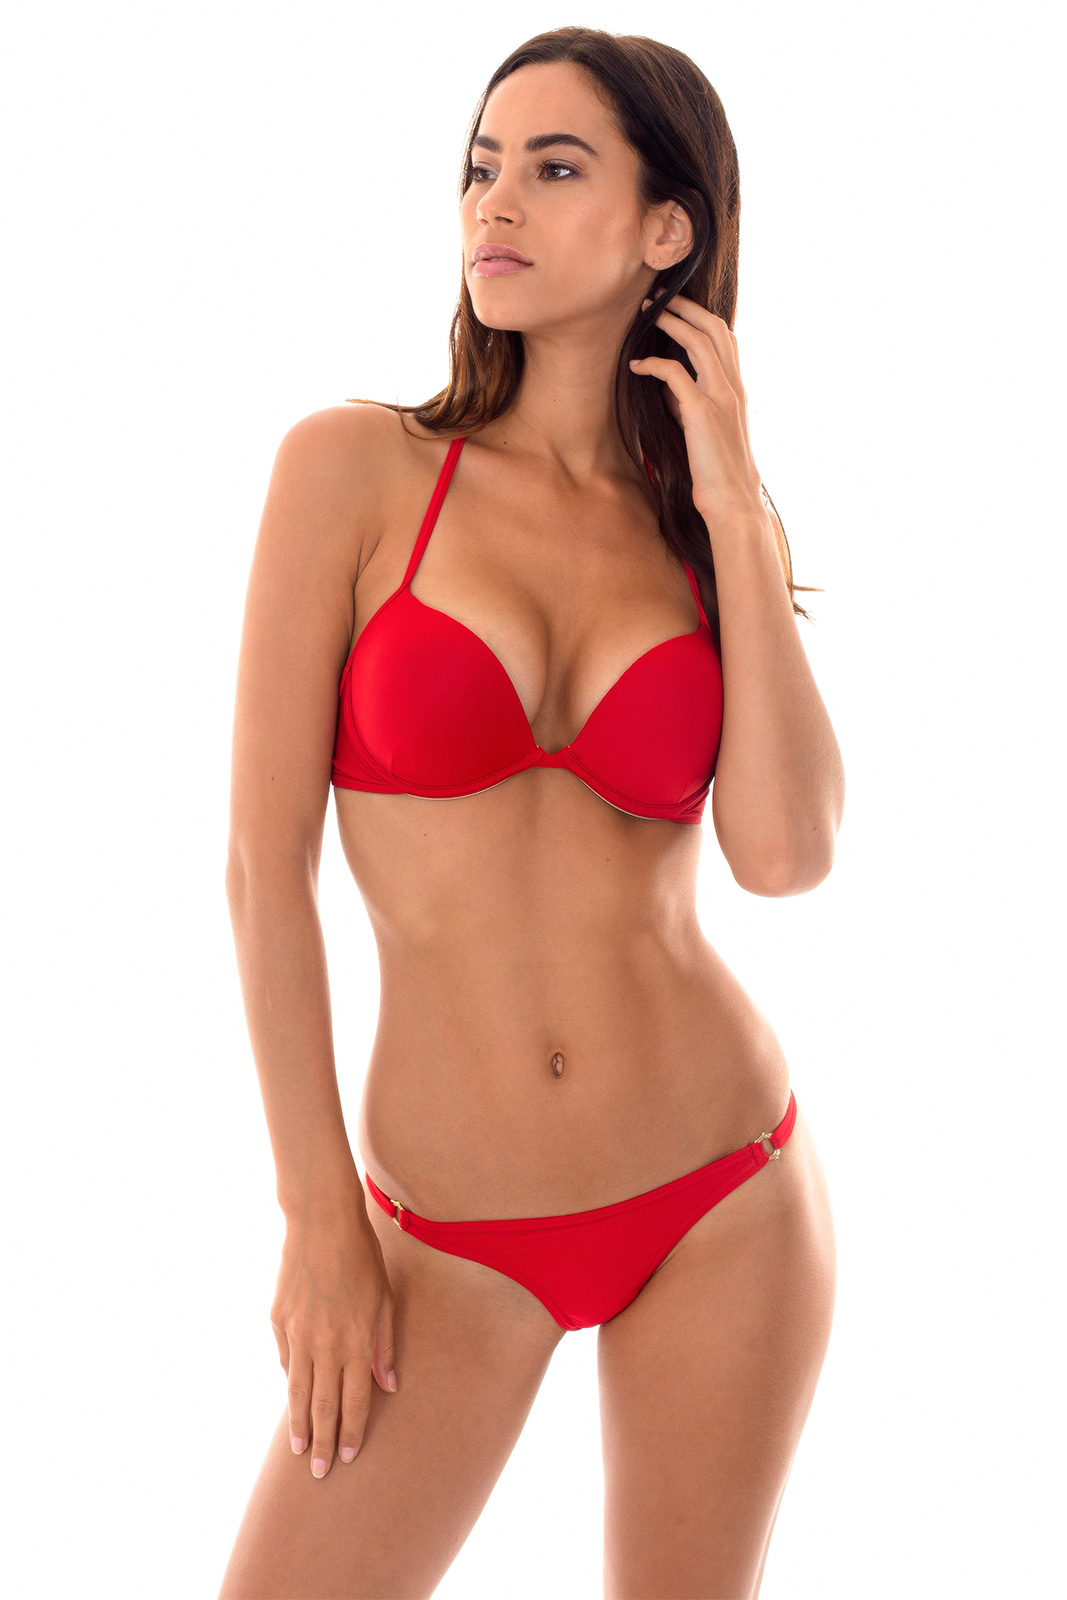 Red Adjustable String Bikini With Push-up Top